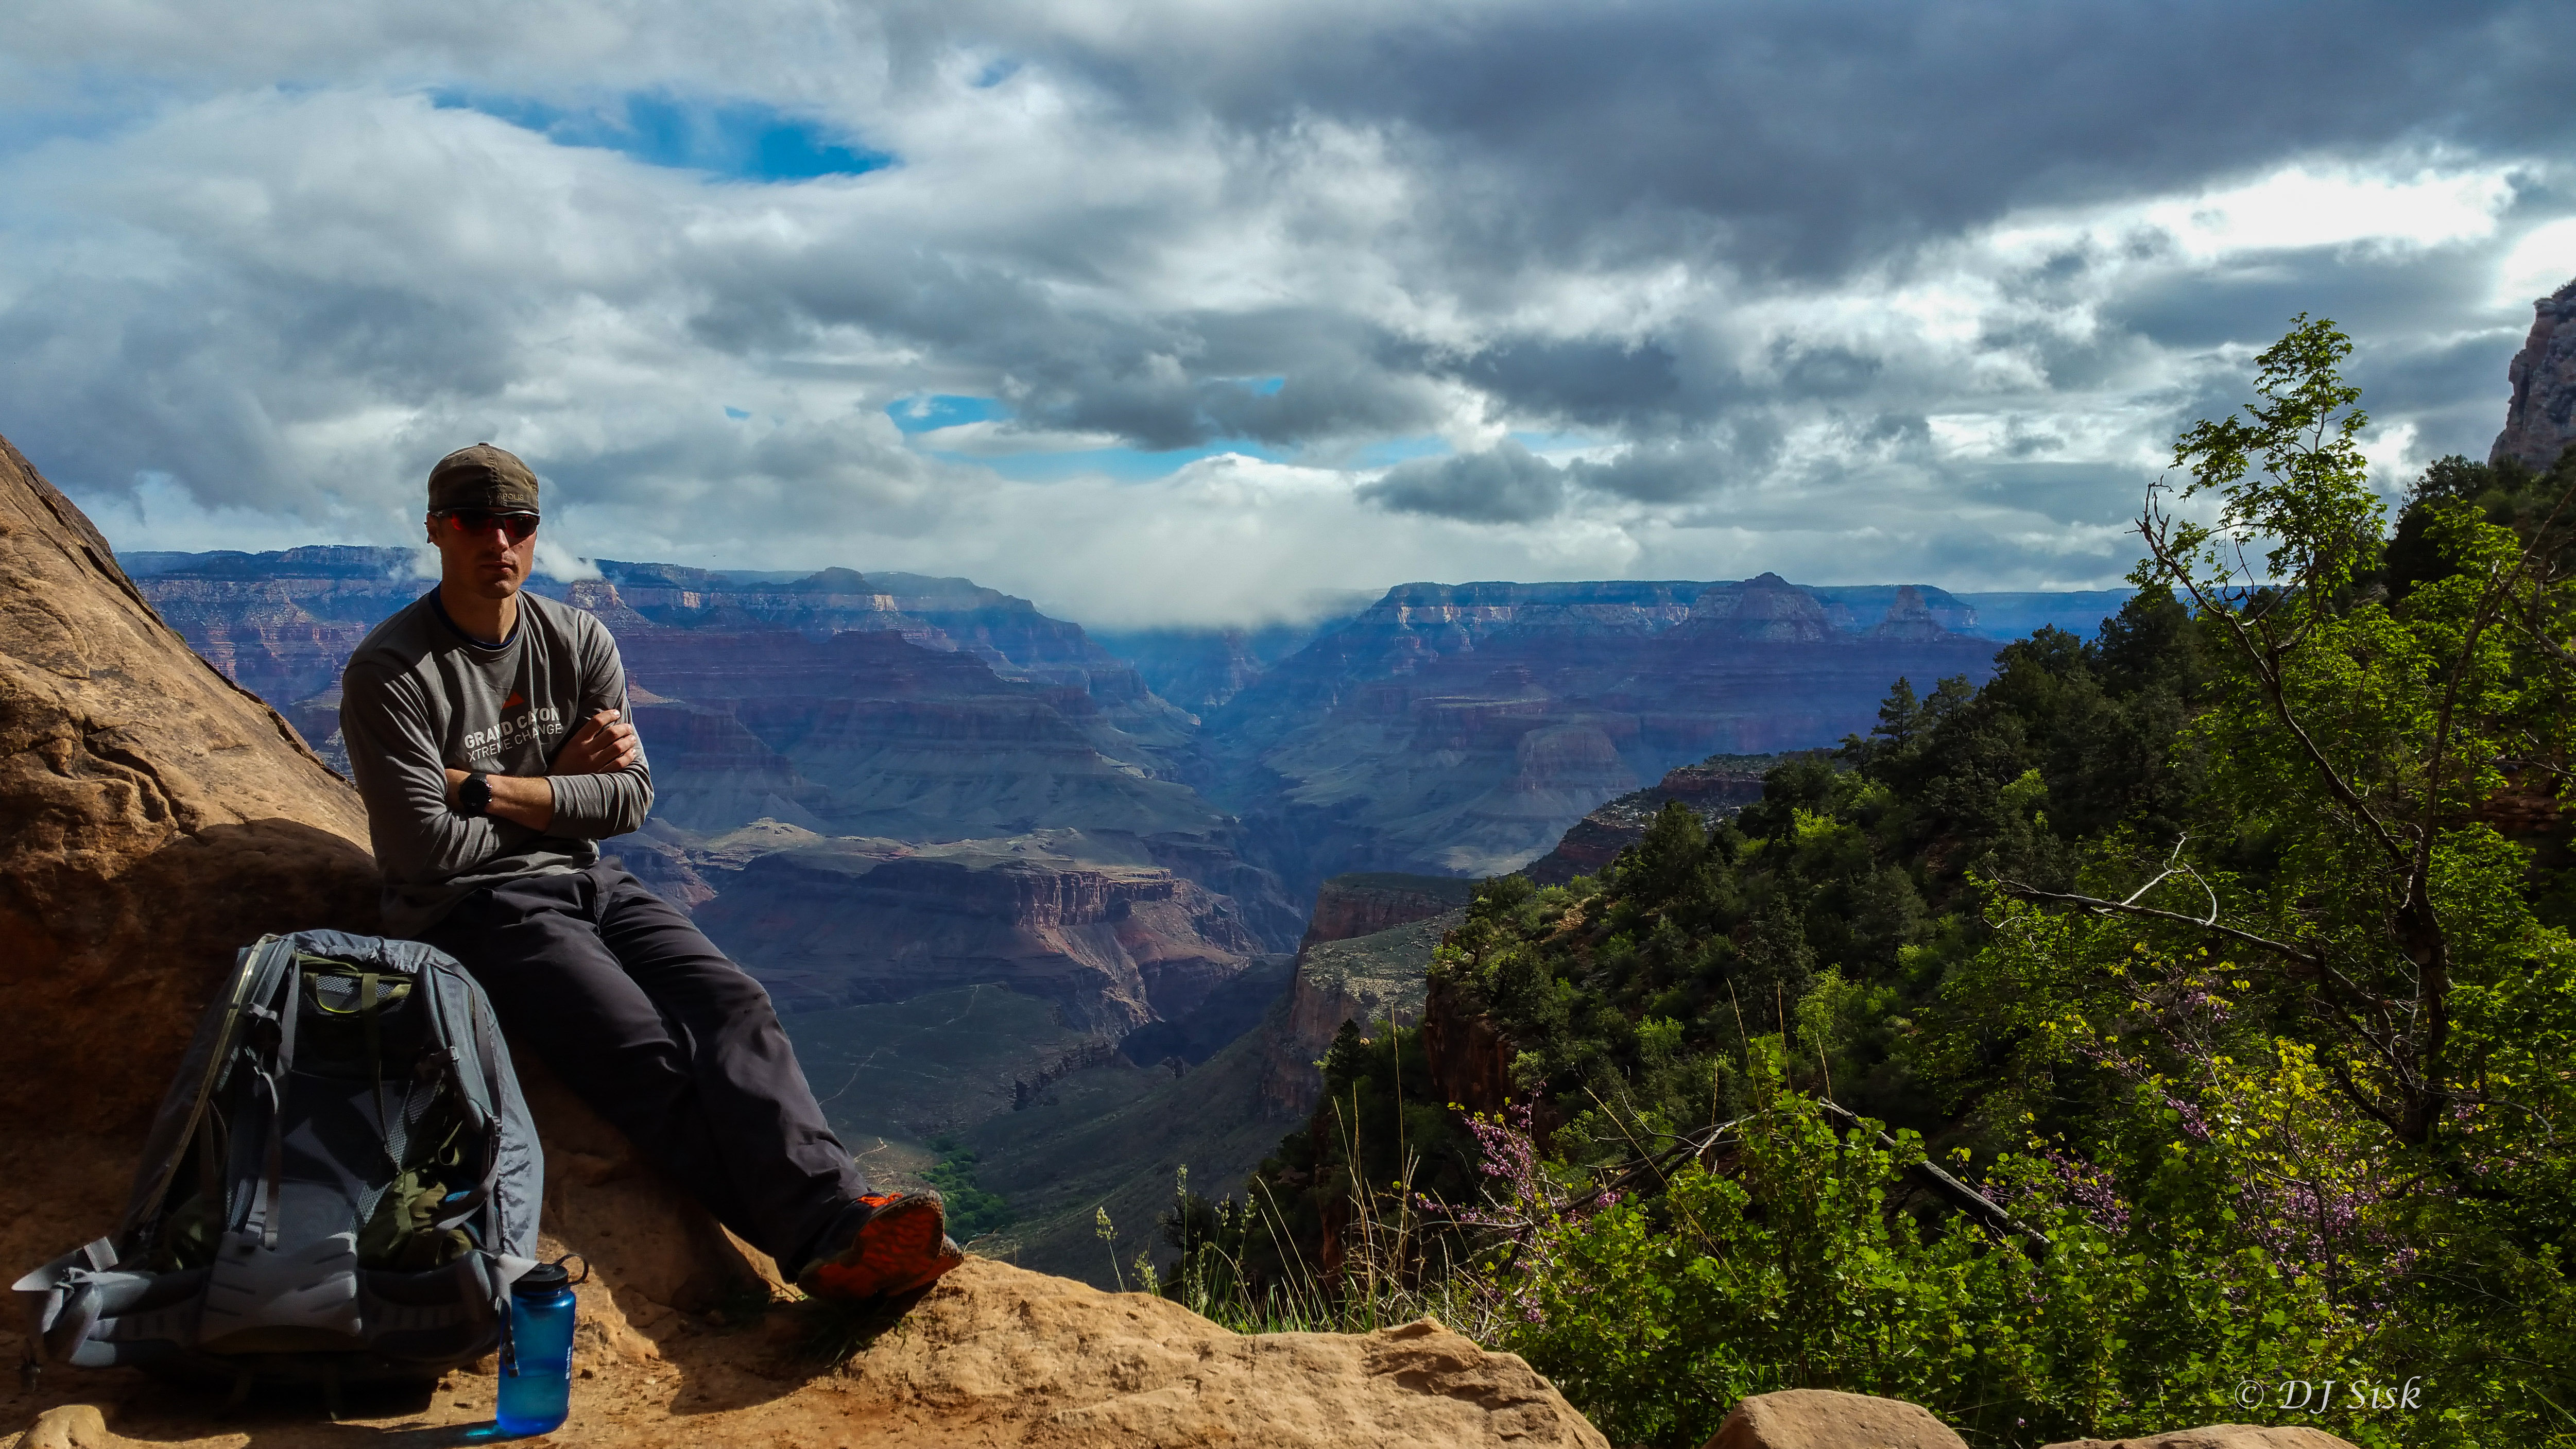 Soaking the View on the Grand Canyon Challenge